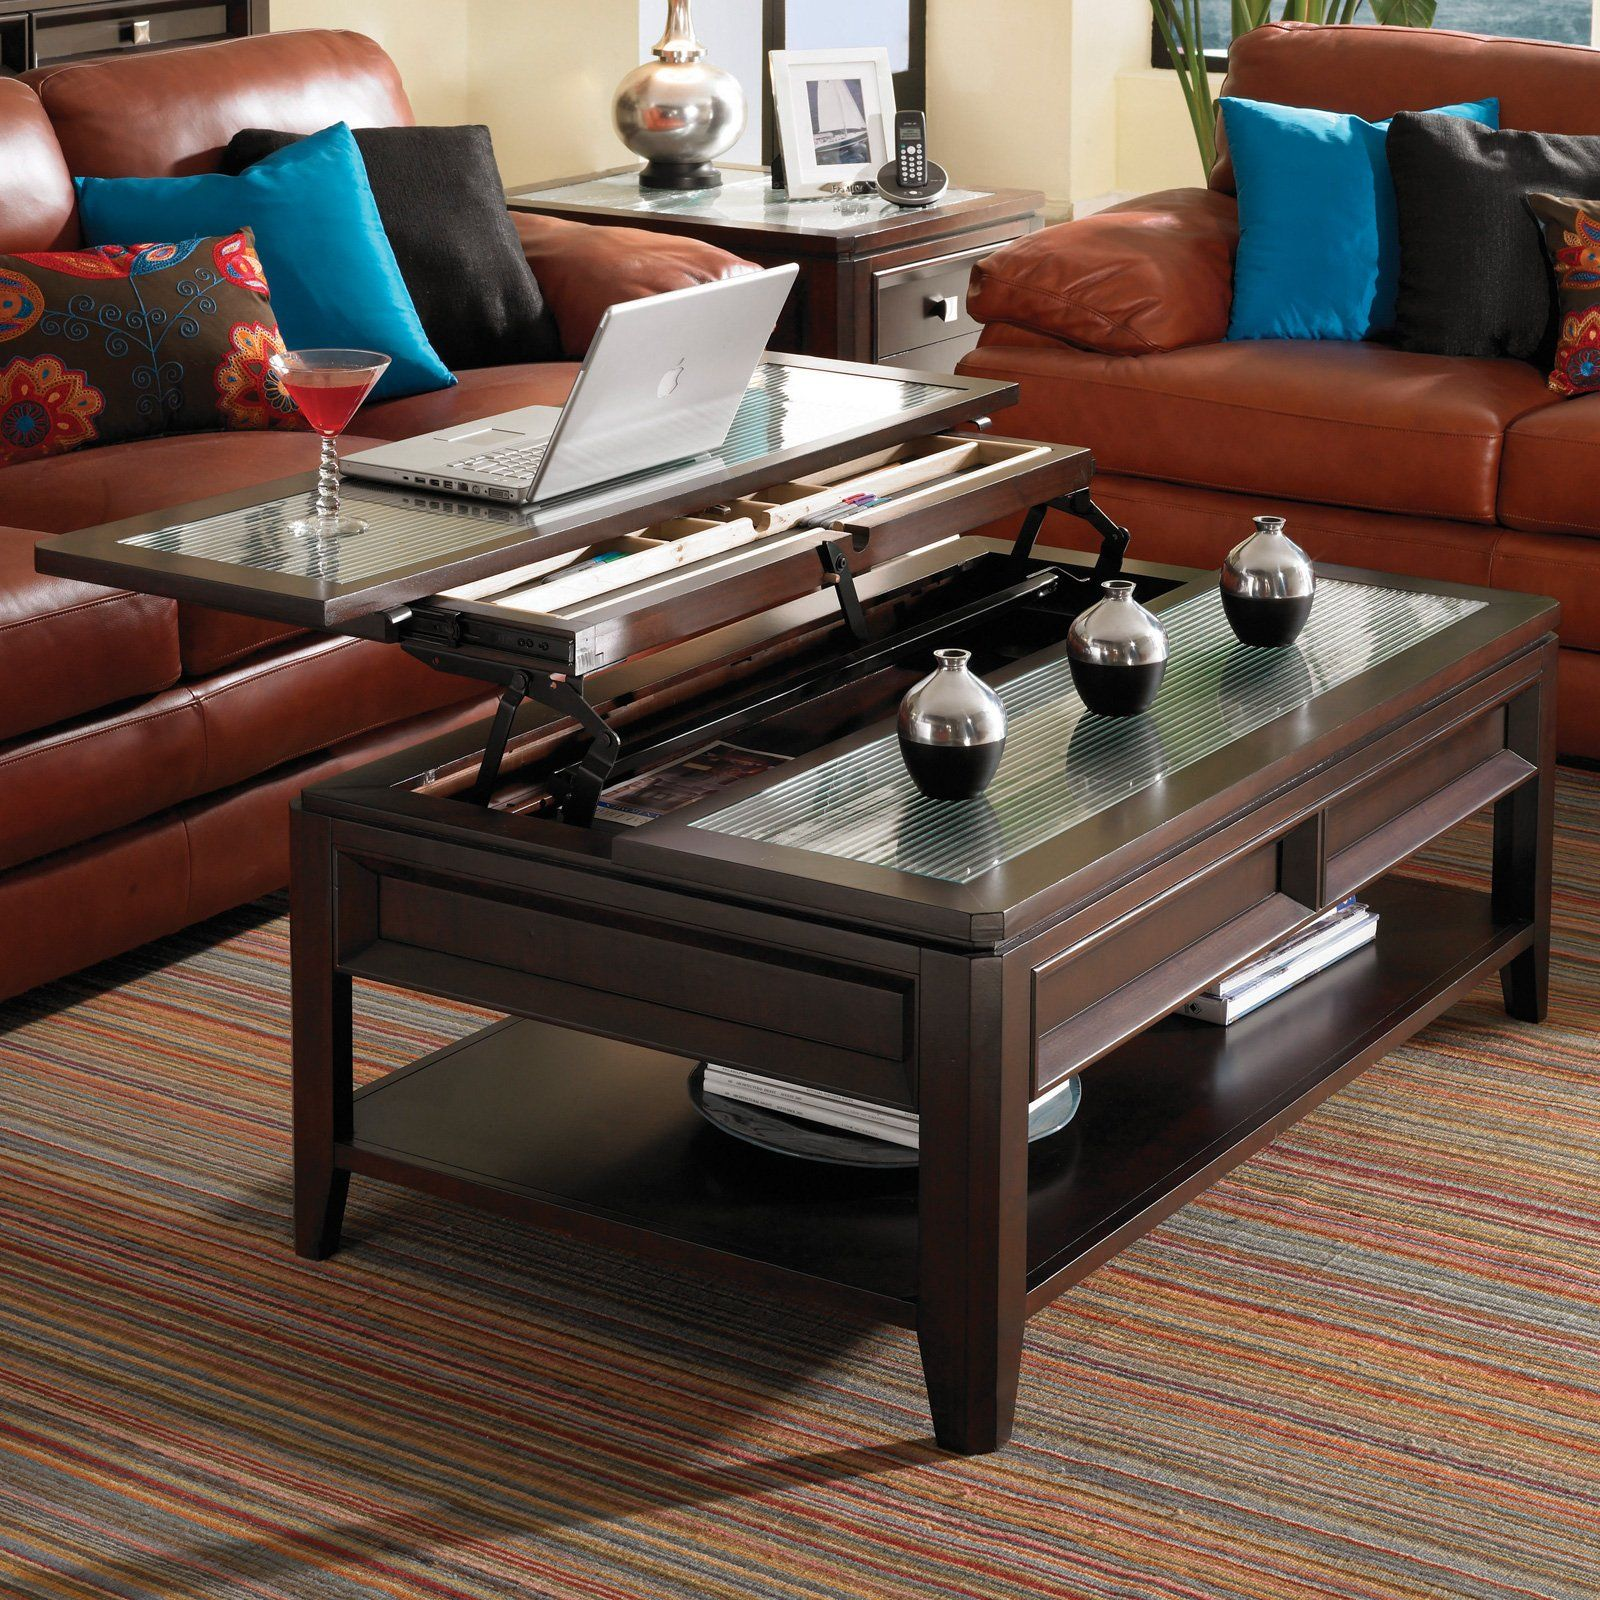 Lift Table Coffee Table: Have To Have It. Brampton Hill Manhattan Liv360 Lift Top